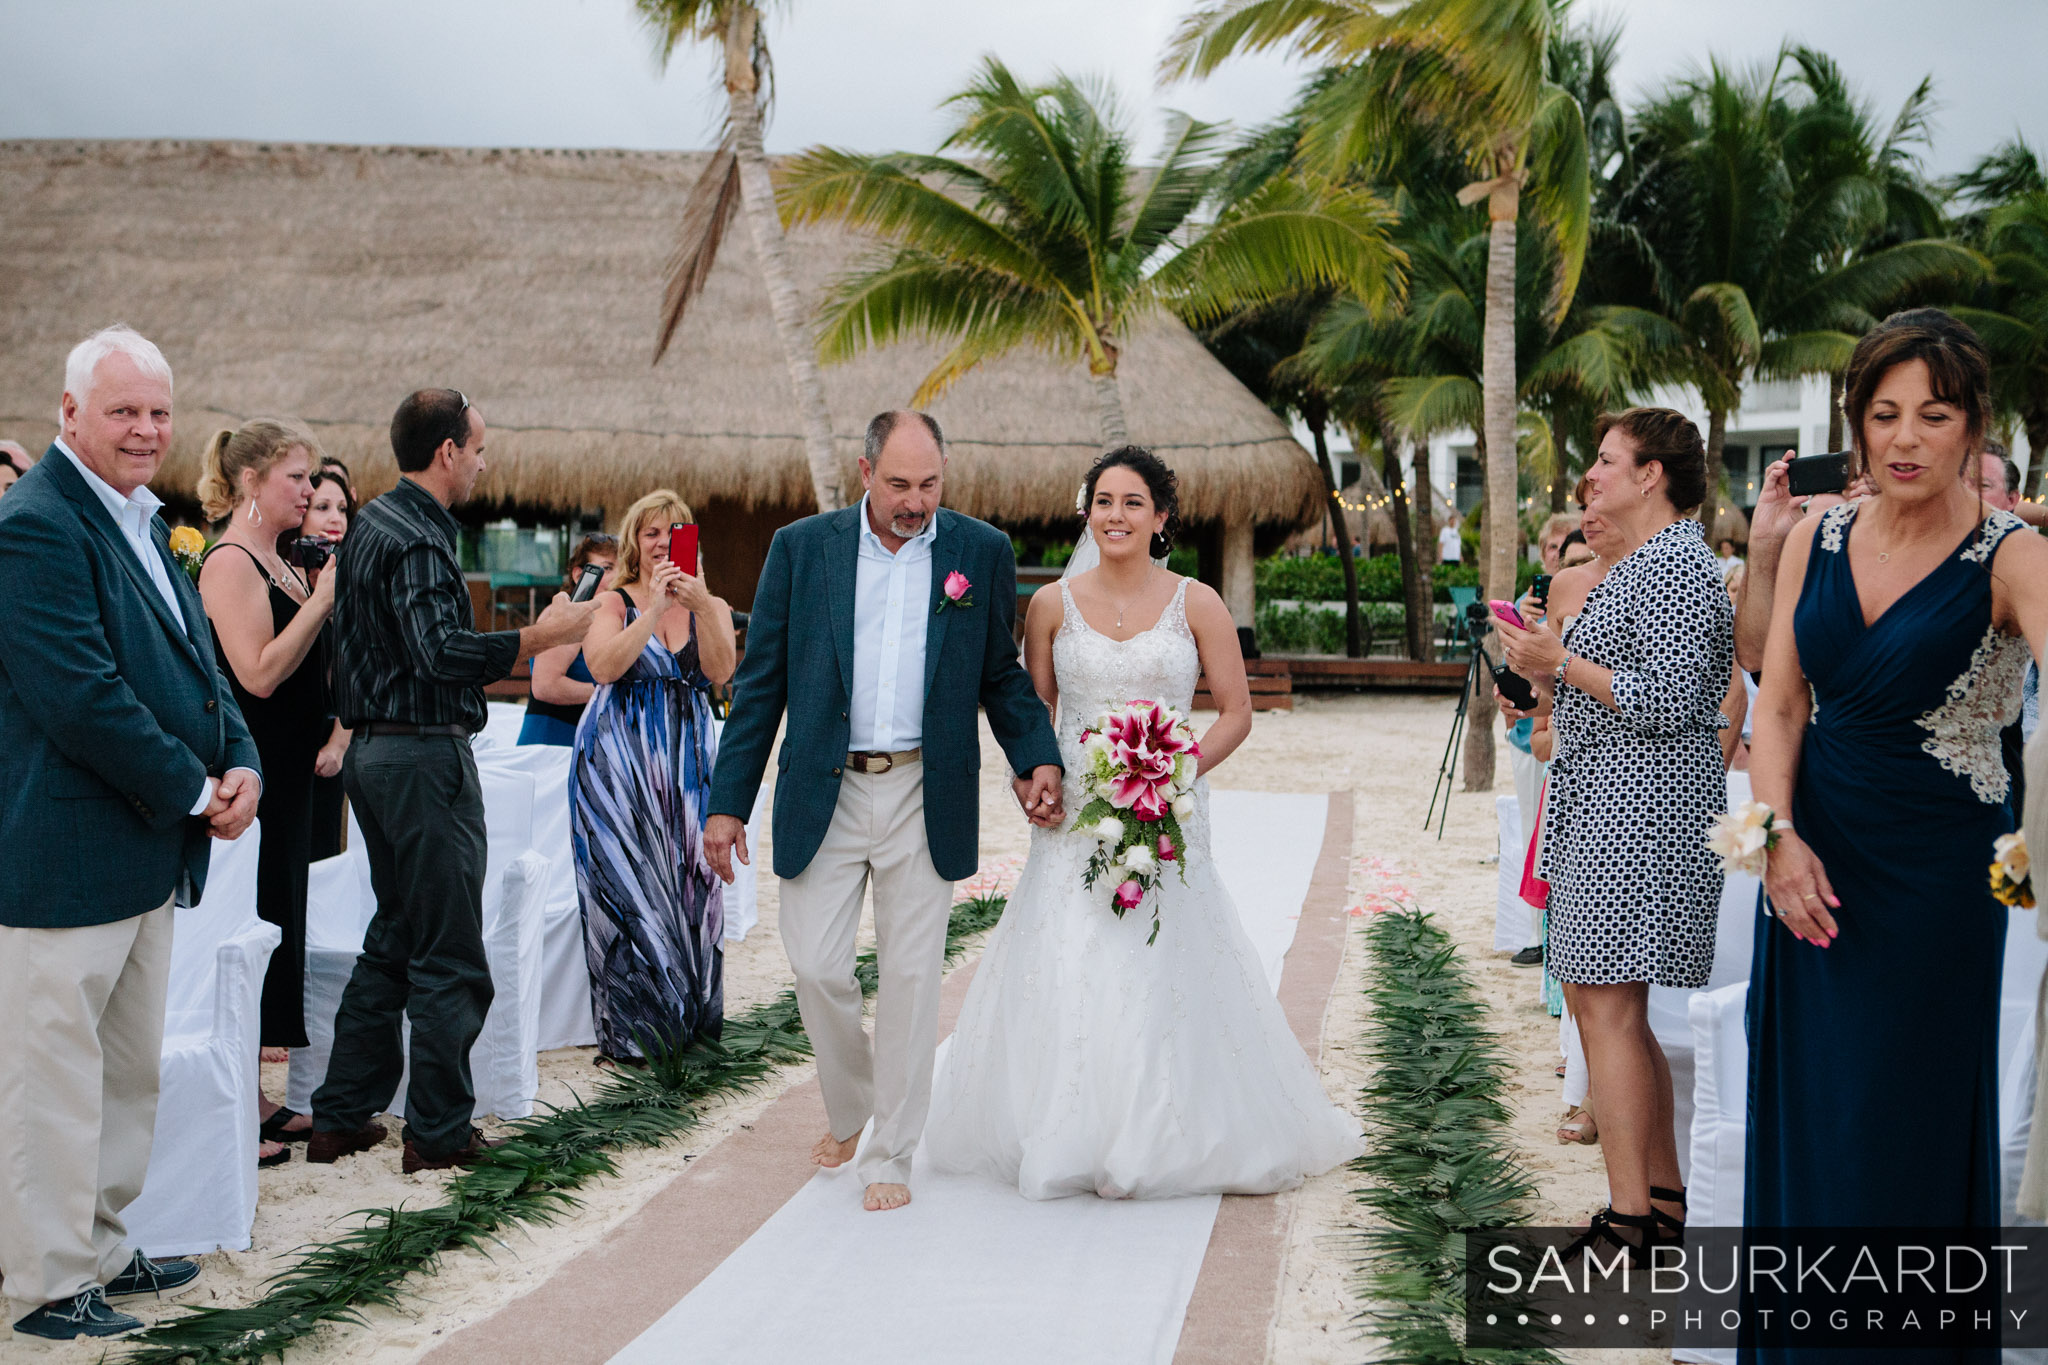 samburkardt-mexico-wedding-beach-0033.jpg